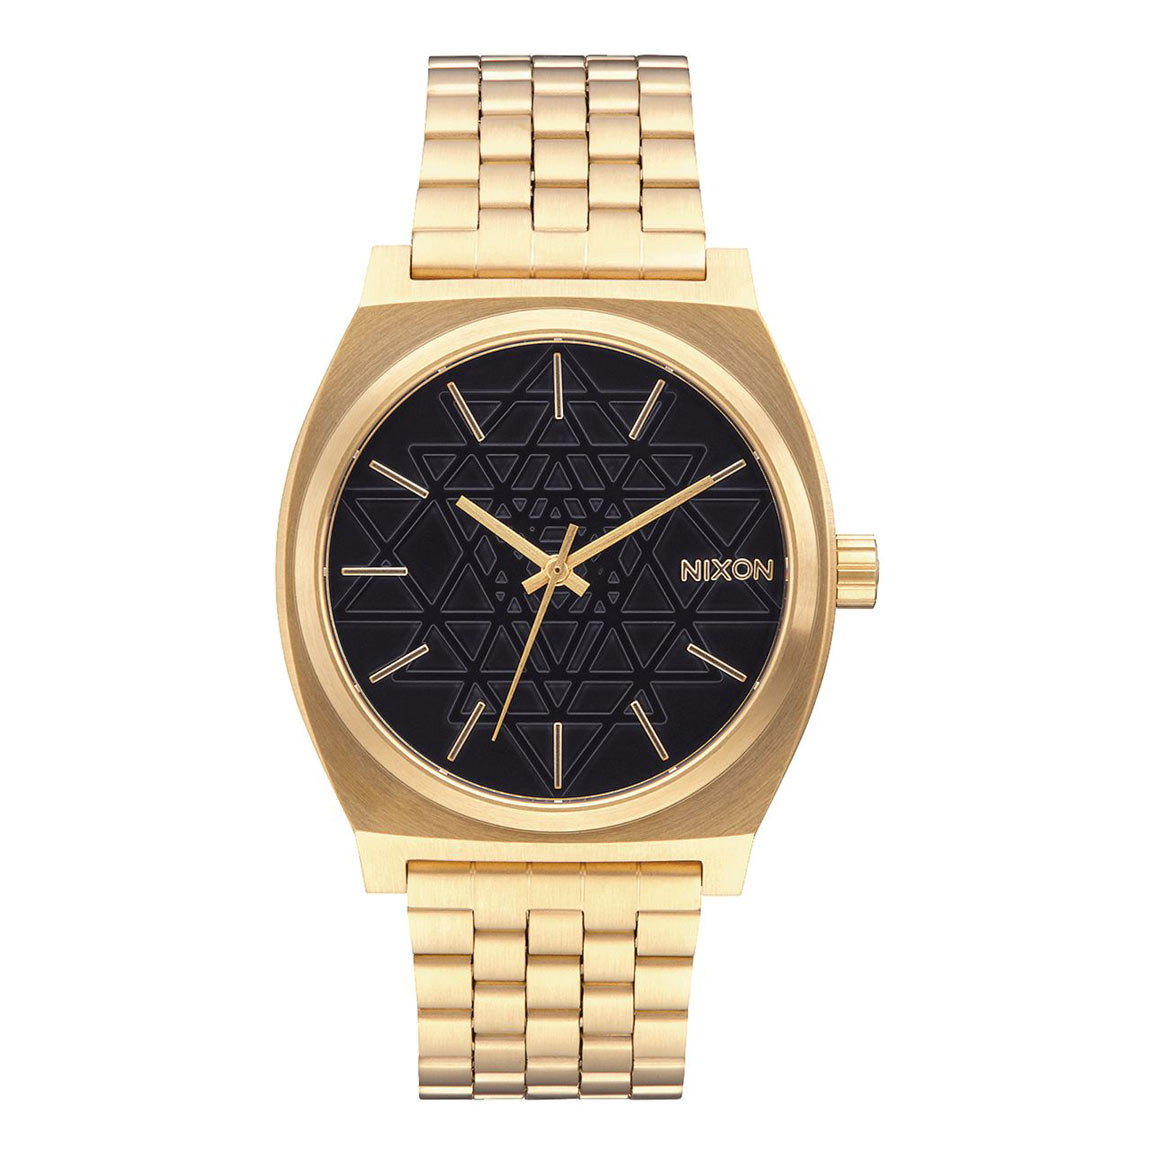 Hodinky Nixon Time Teller gold/black stamped